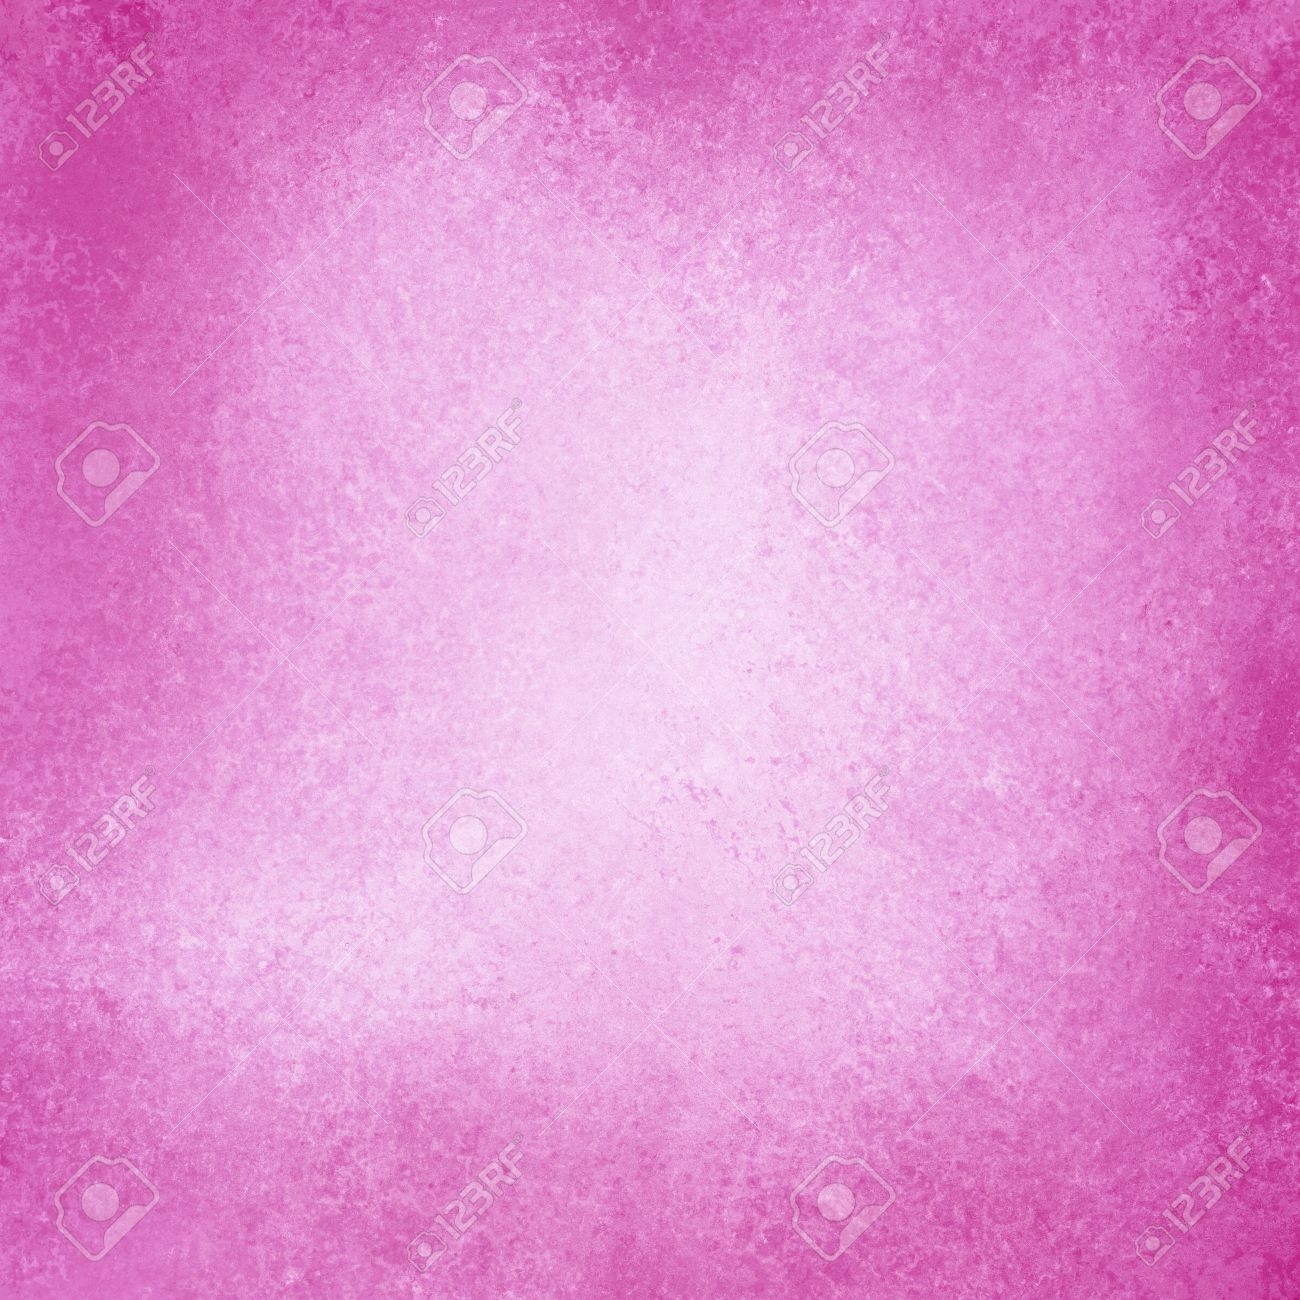 Old Purple Pink Paper Background Vintage With Burnt Edges Or Grunge Border Design